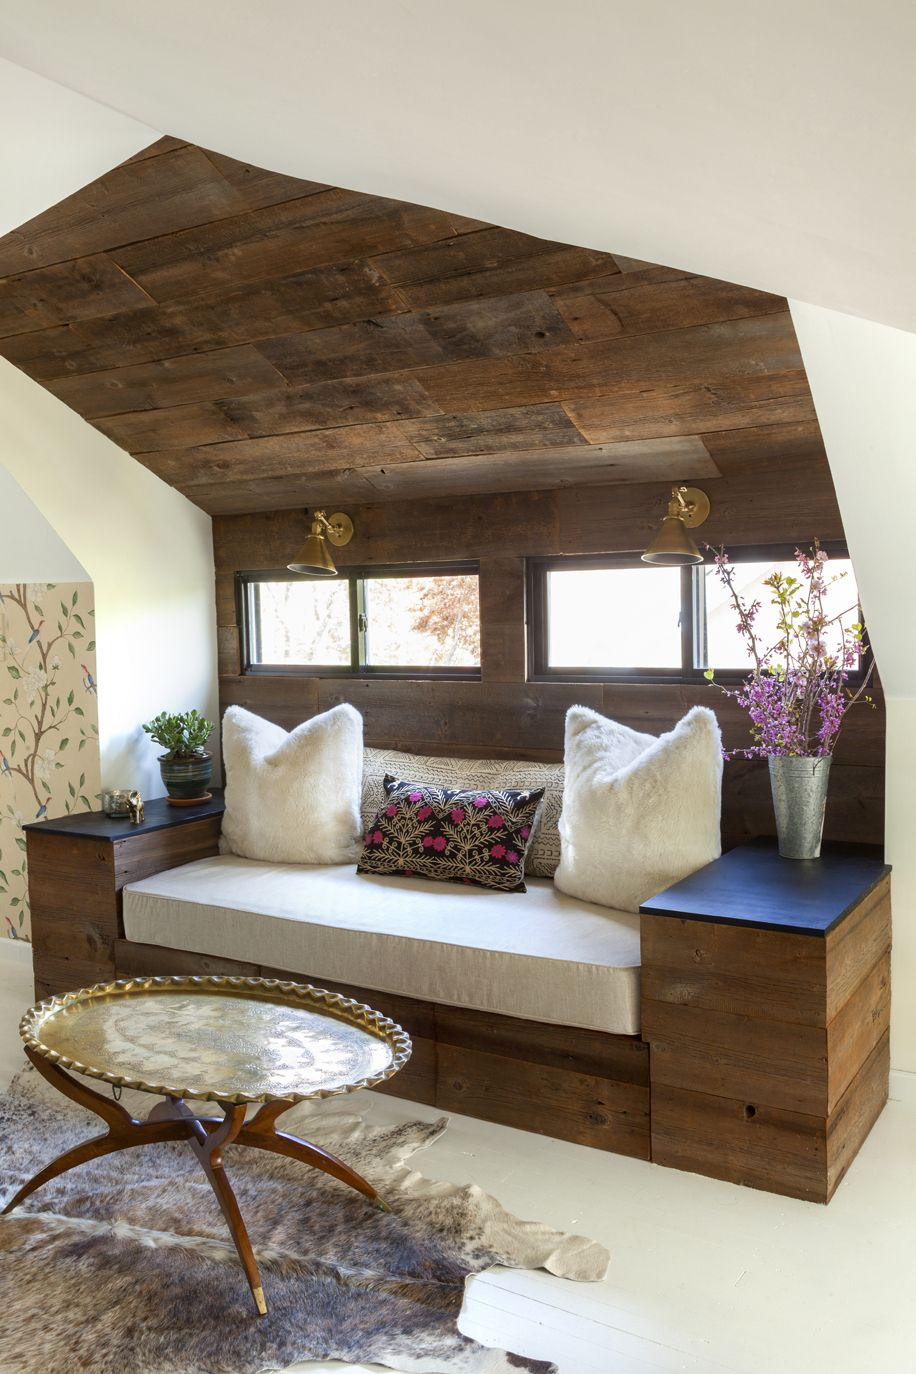 Reclaimed Wood Wall Built In Day bed - Design Manifest - Reclaimed Wood Wall Built In Day Bed - Design Manifest Indoor